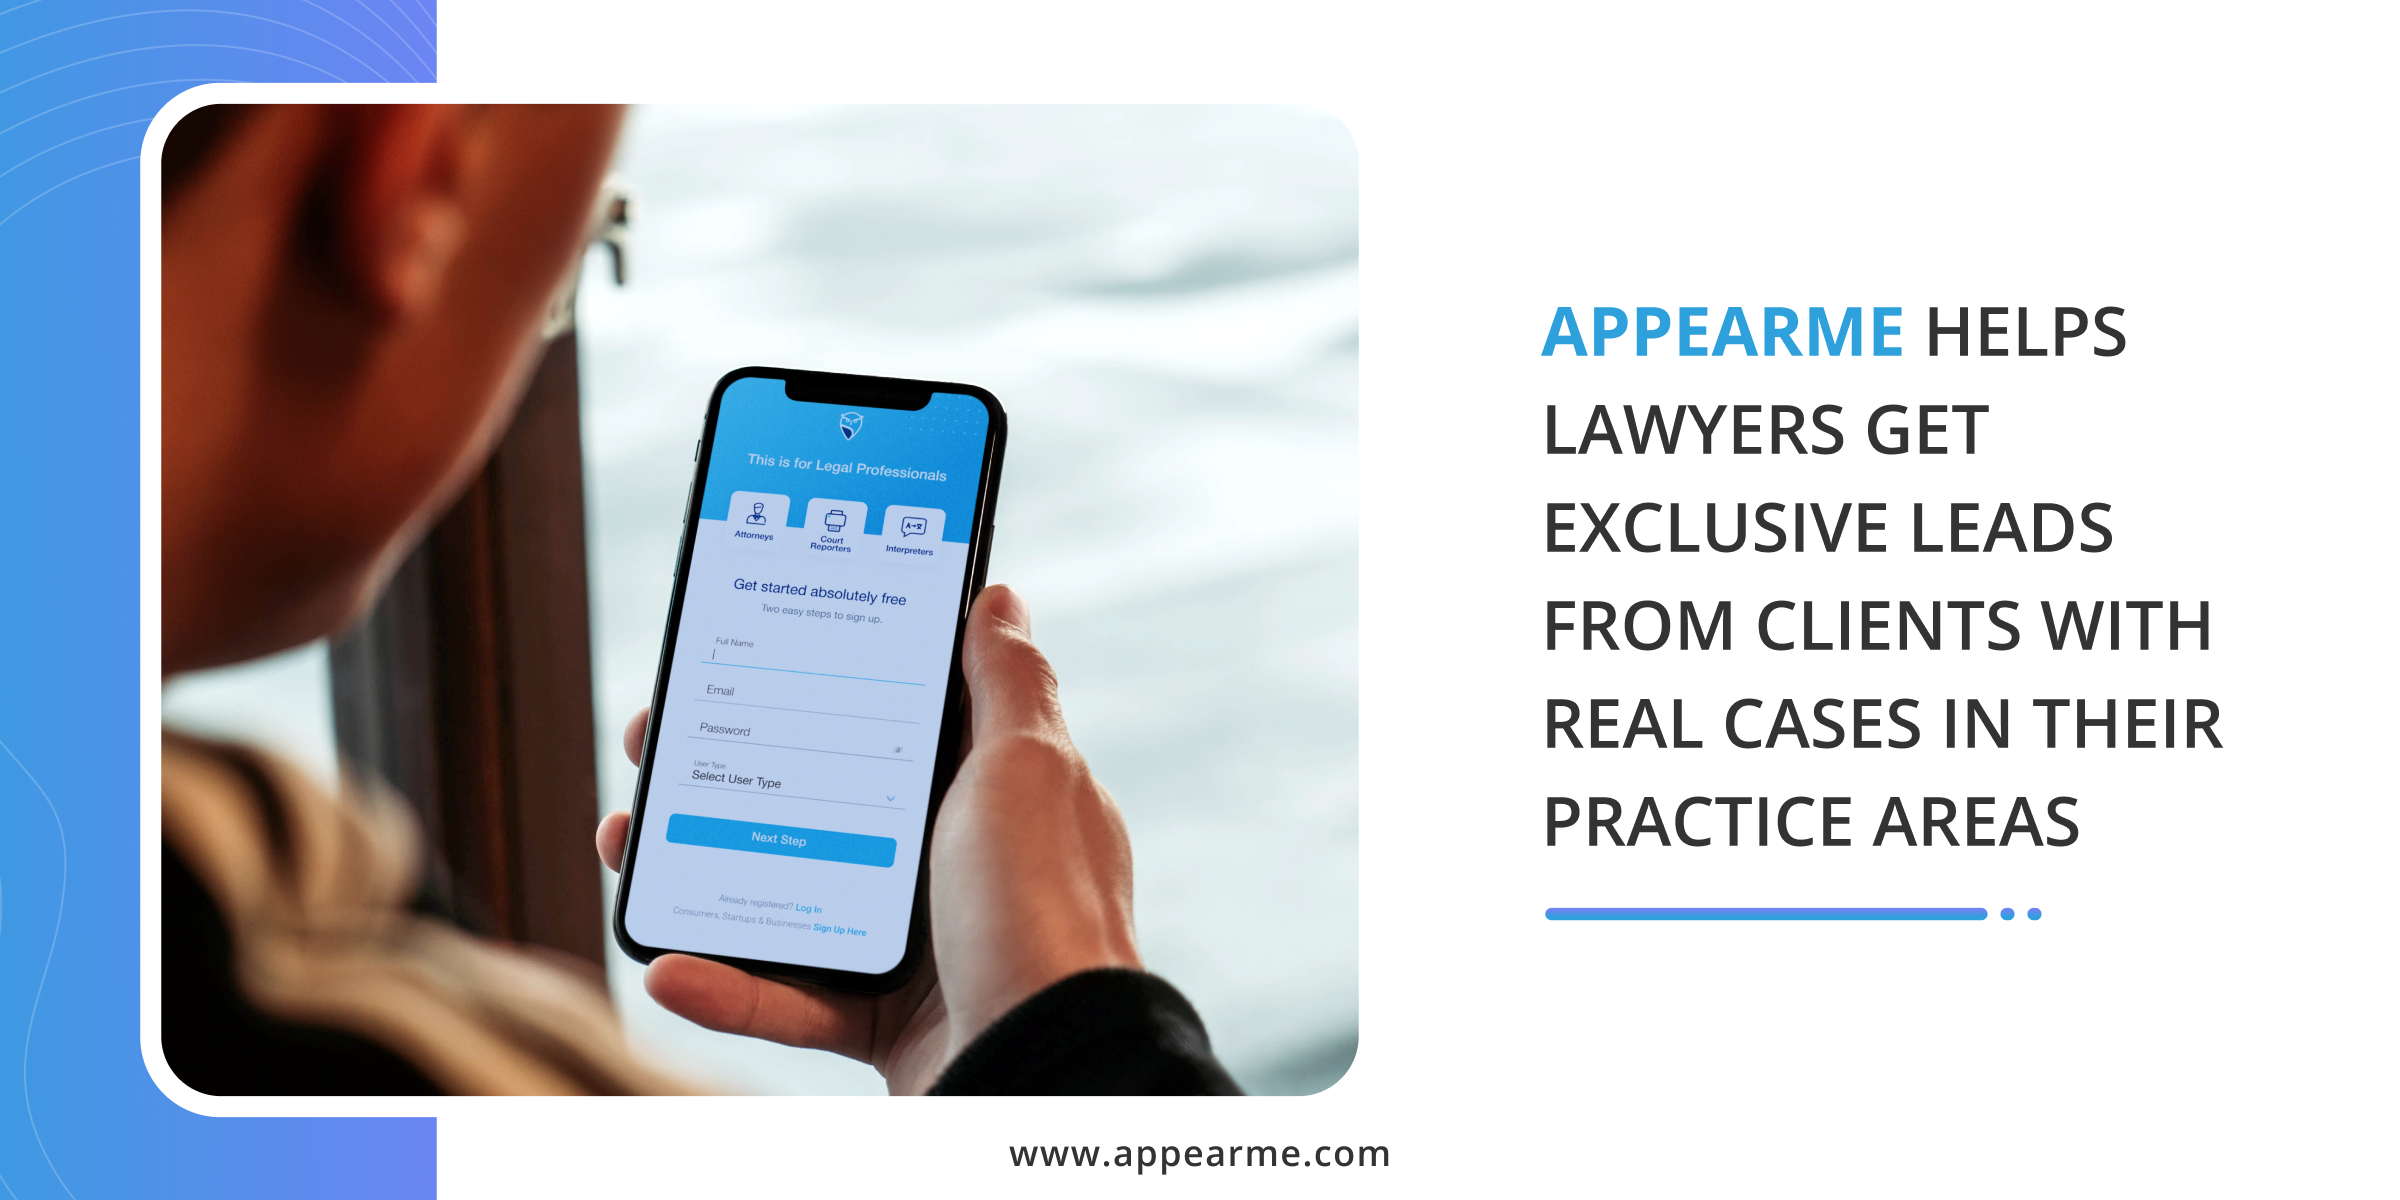 AppearMe Helps Lawyers Get Exclusive Leads from Clients with Real Cases in Their Practice Areas